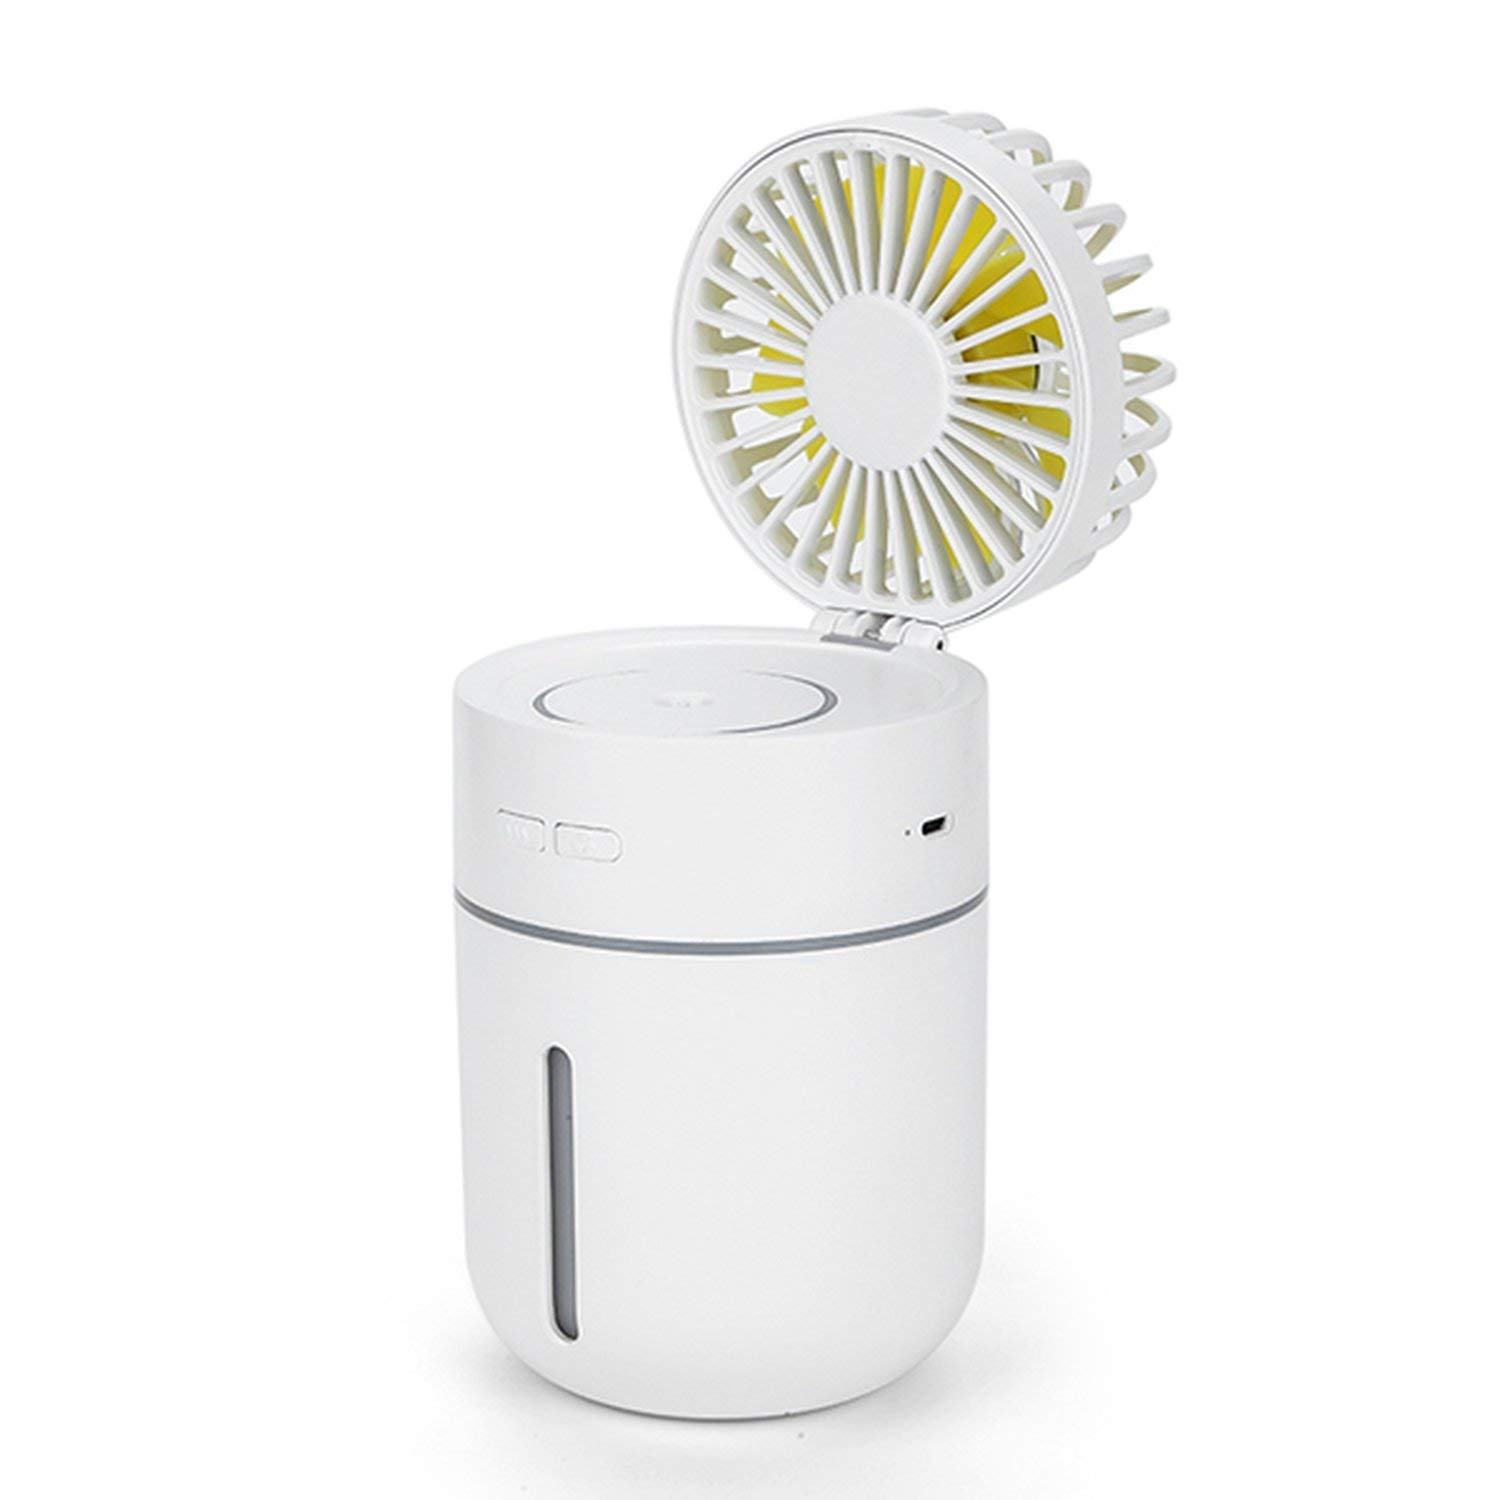 Saengq Battery Fan with Humidifier 400Ml USB Aroma Essential Oil Diffuser 7 Color Night Light Portable Table Fan,White